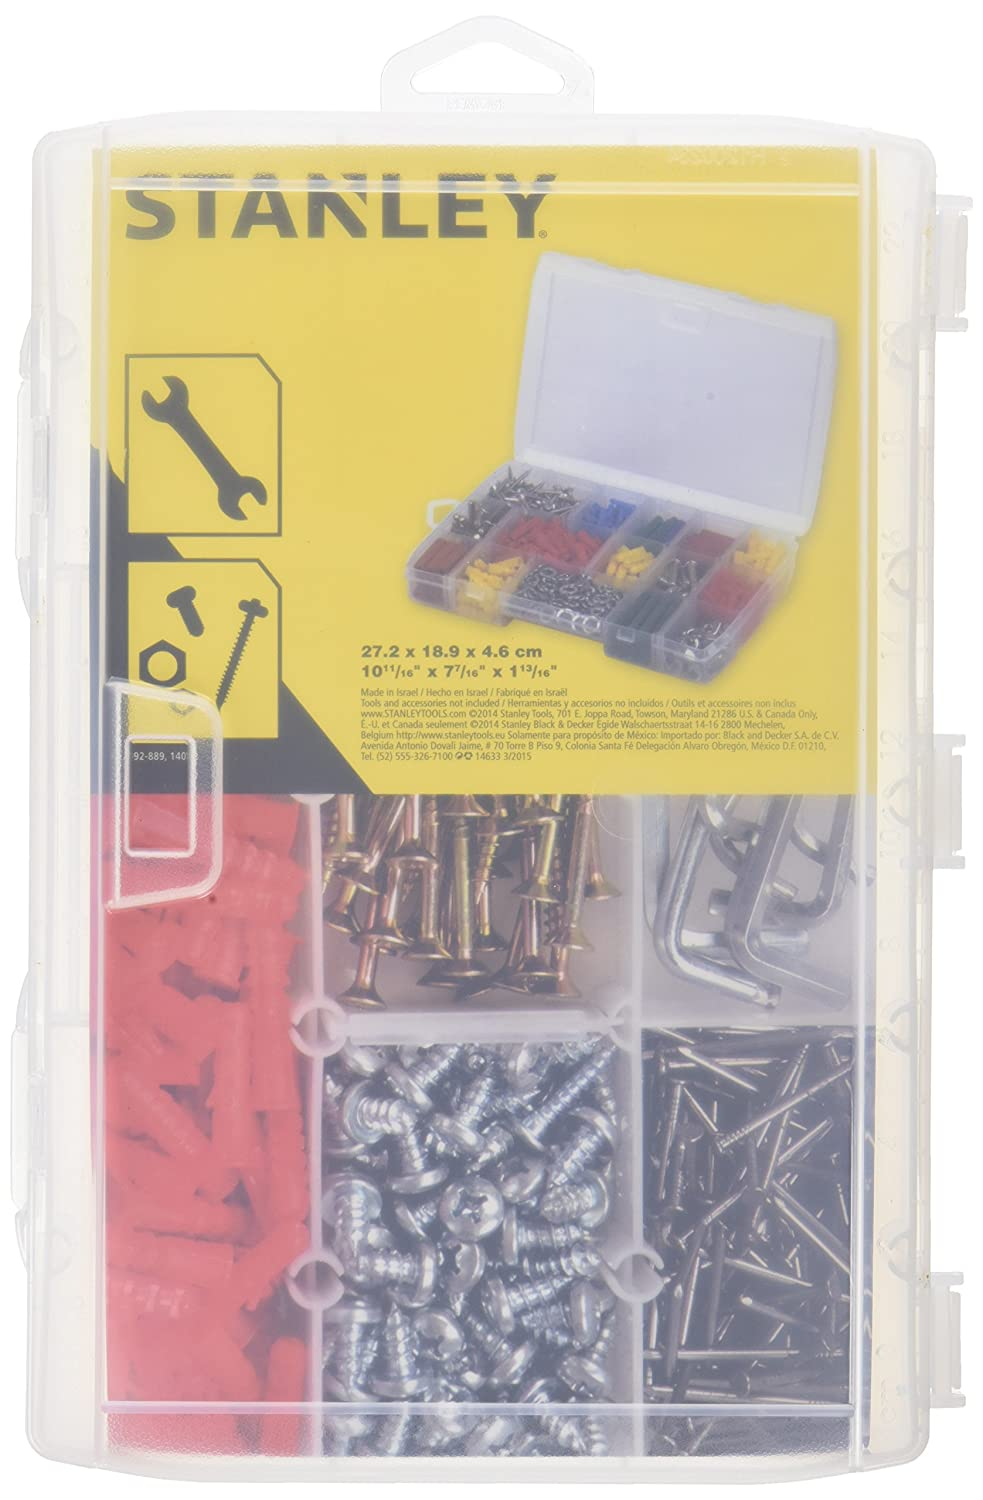 Stanley 1-92-889 Organizer with 17 compartments in Transparent, Multicolor